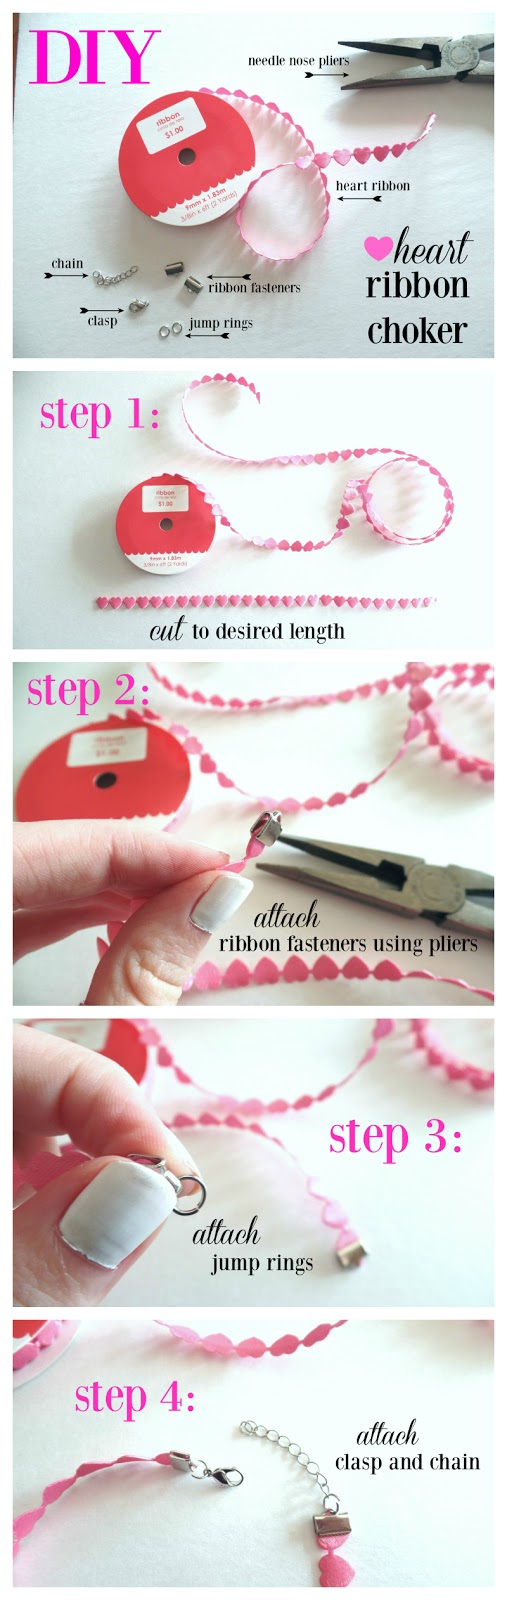 DIY heart ribbon choker necklace how to